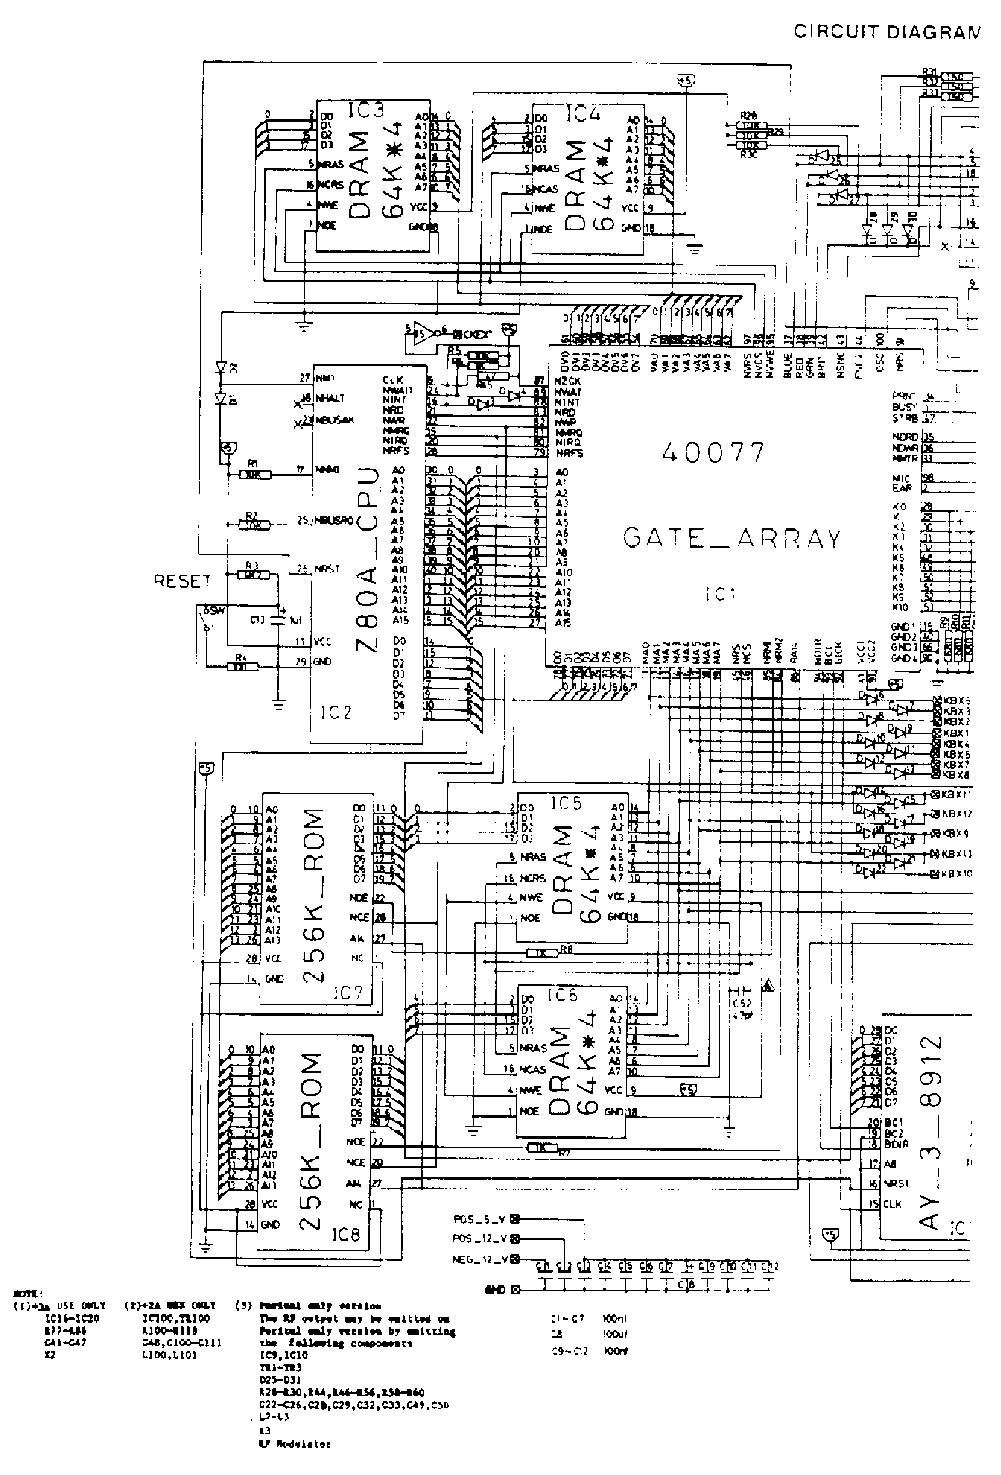 demodulator circuit Page 3 : Other Circuits :: Next.gr